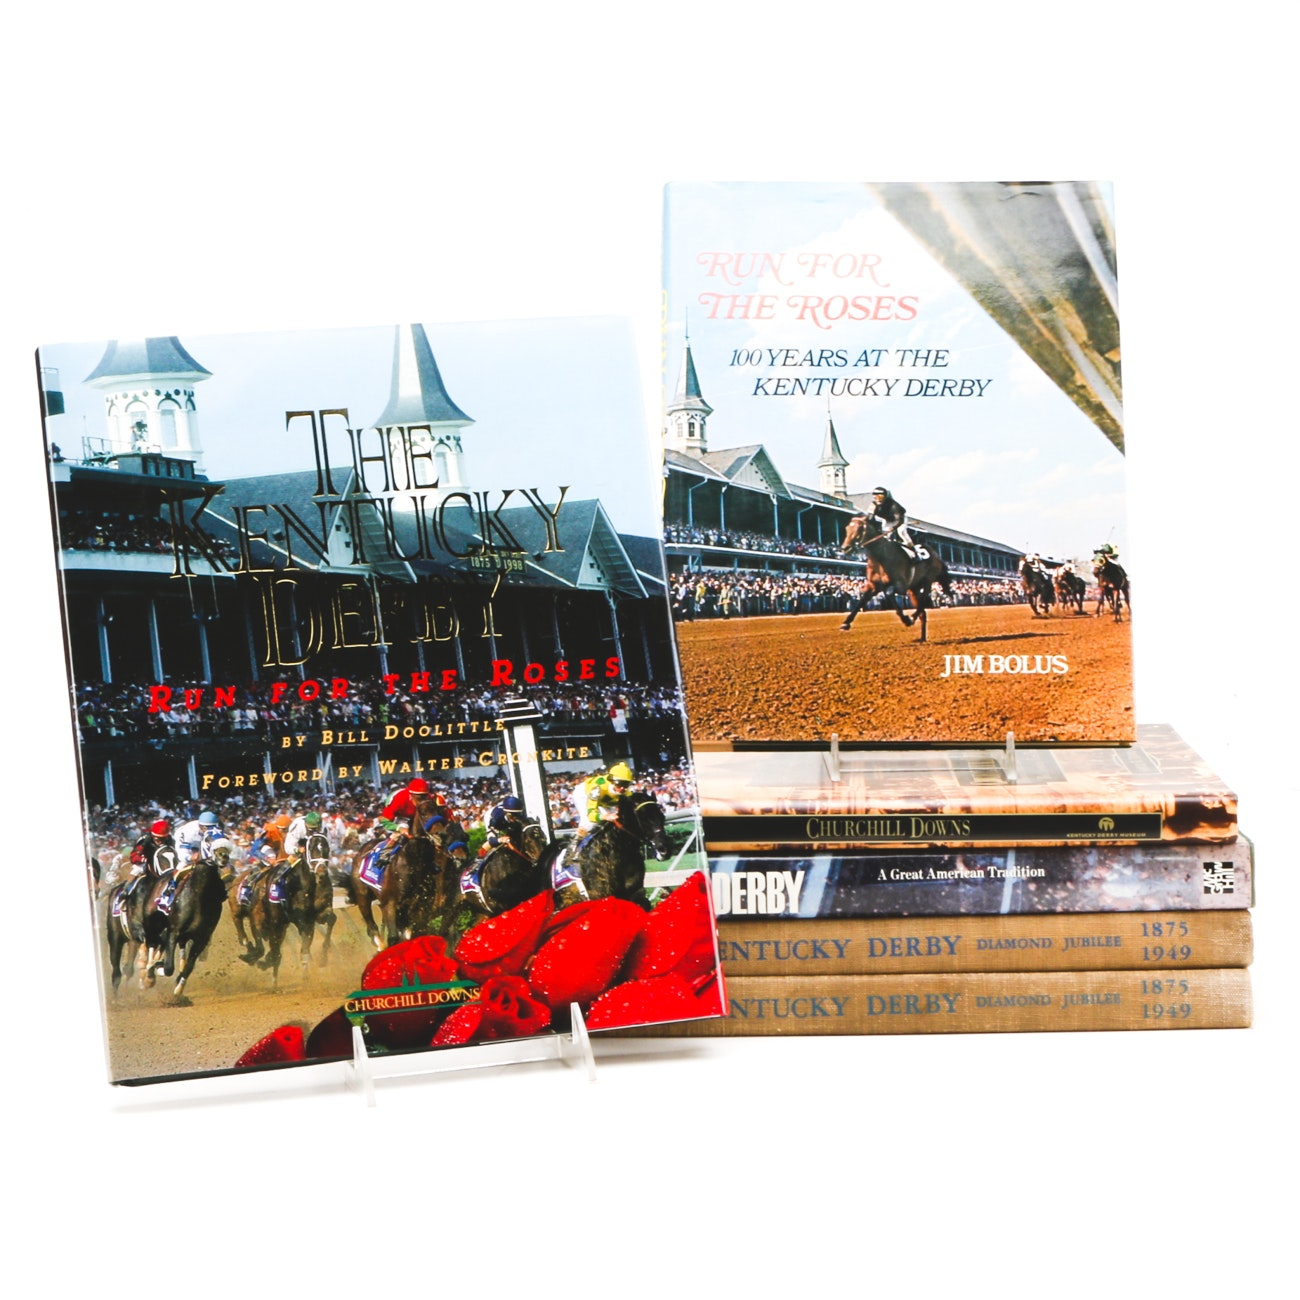 Kentucky Derby Books From Cawood Ledford Estate